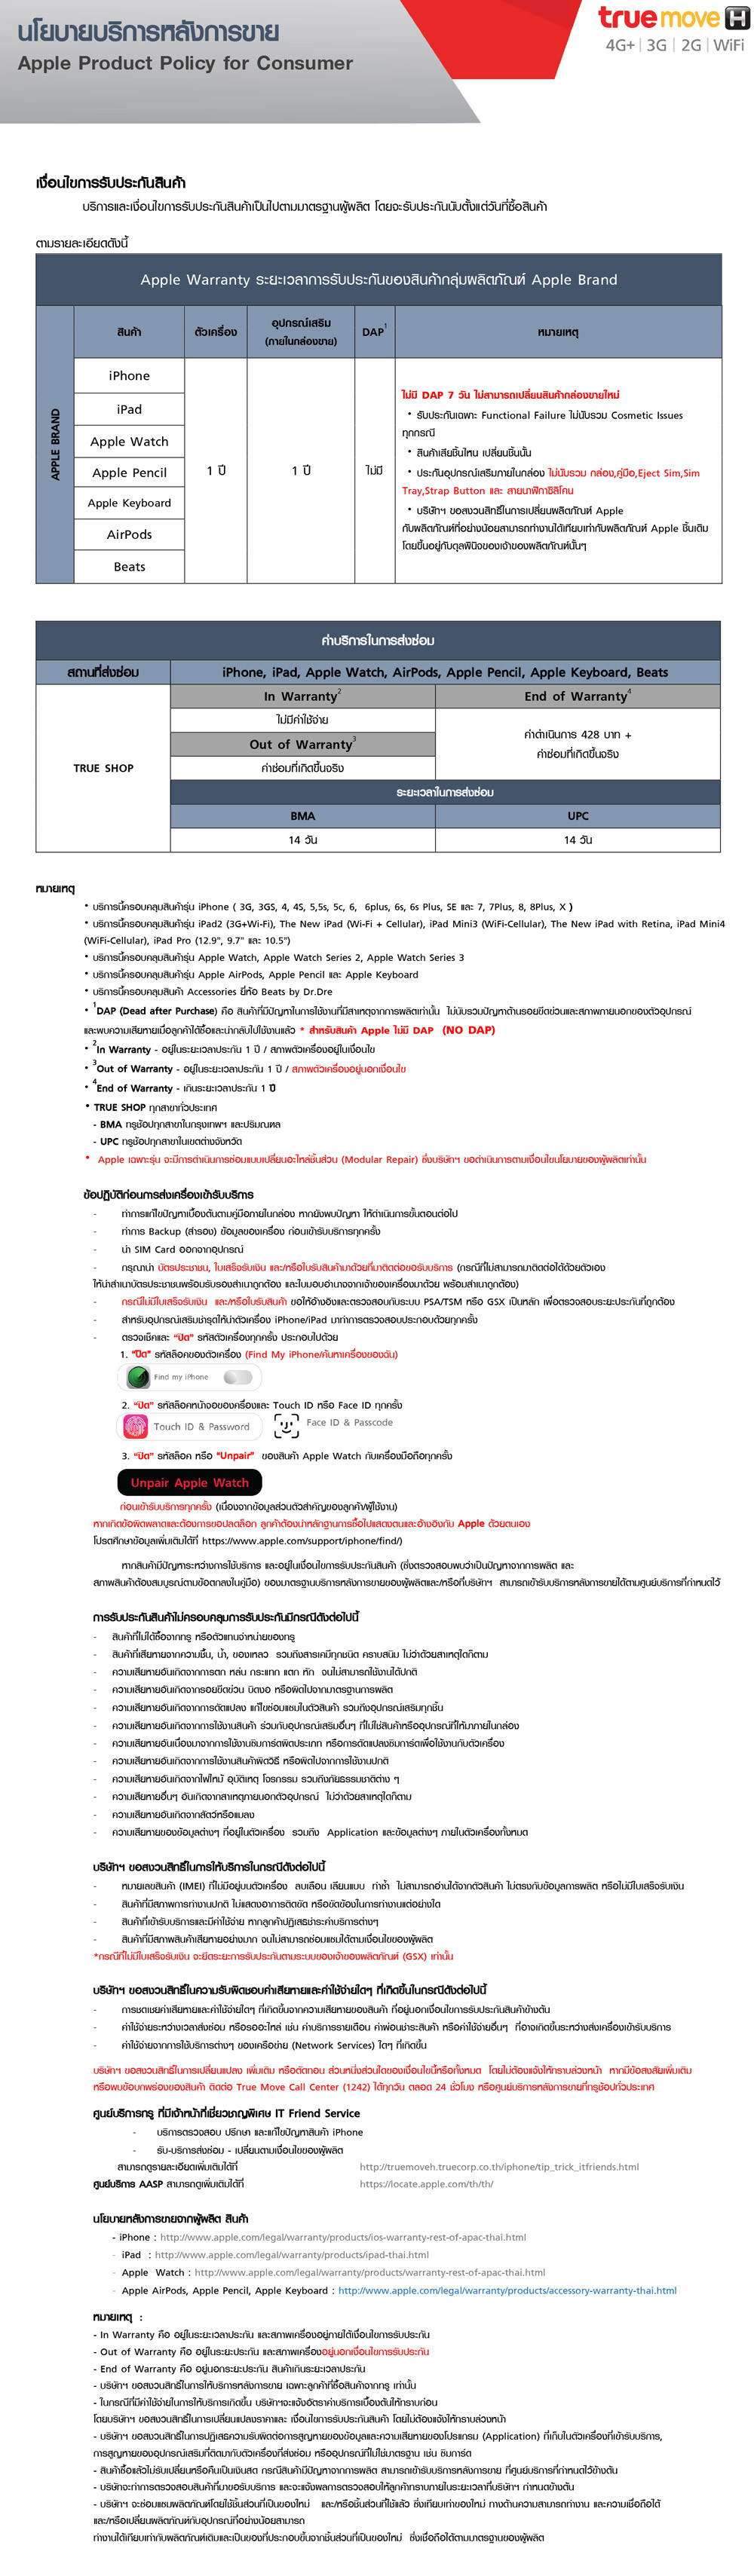 apple-warranty-policy-20-nov-17.jpg